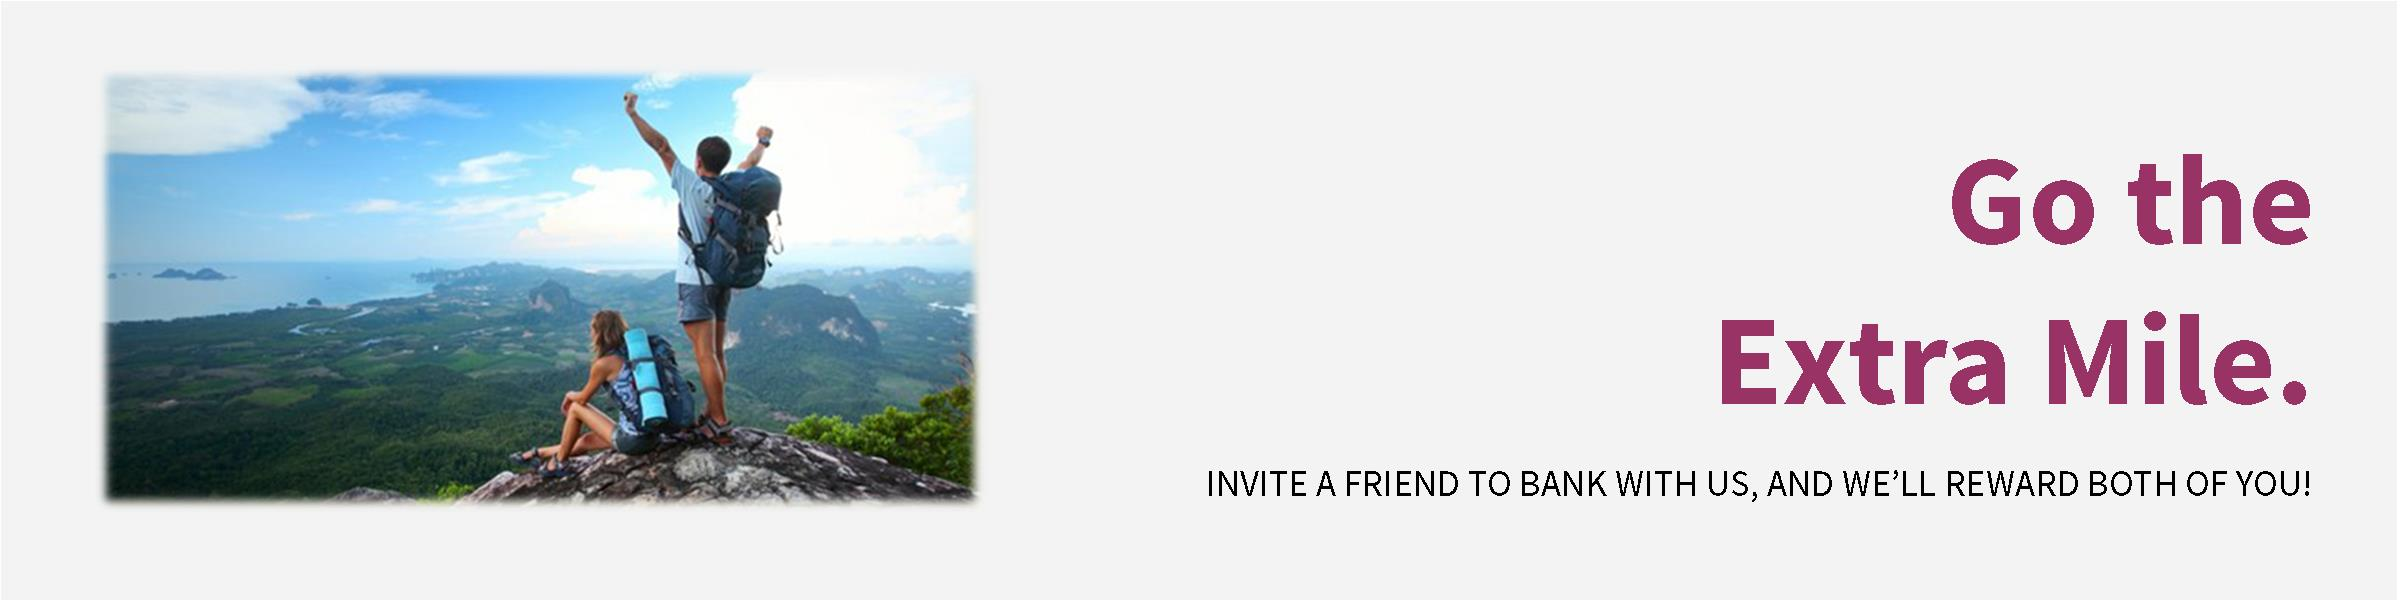 Invite a Friend to Bank with Us, and We'll Reward Both of You!